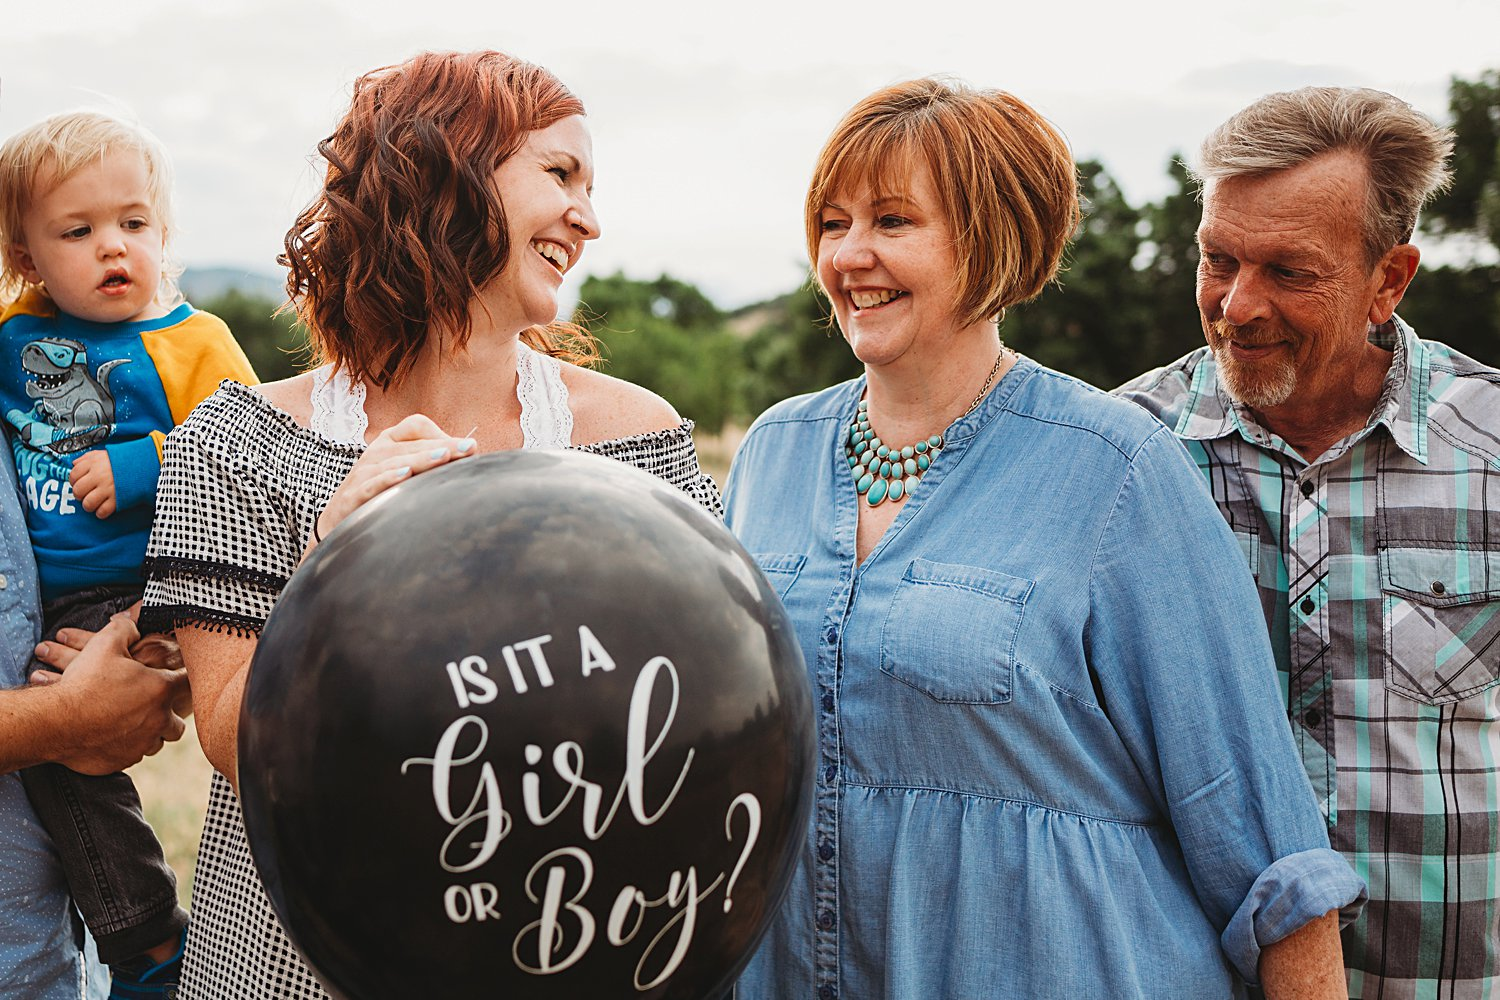 Mom and daughter with gender reveal balloon